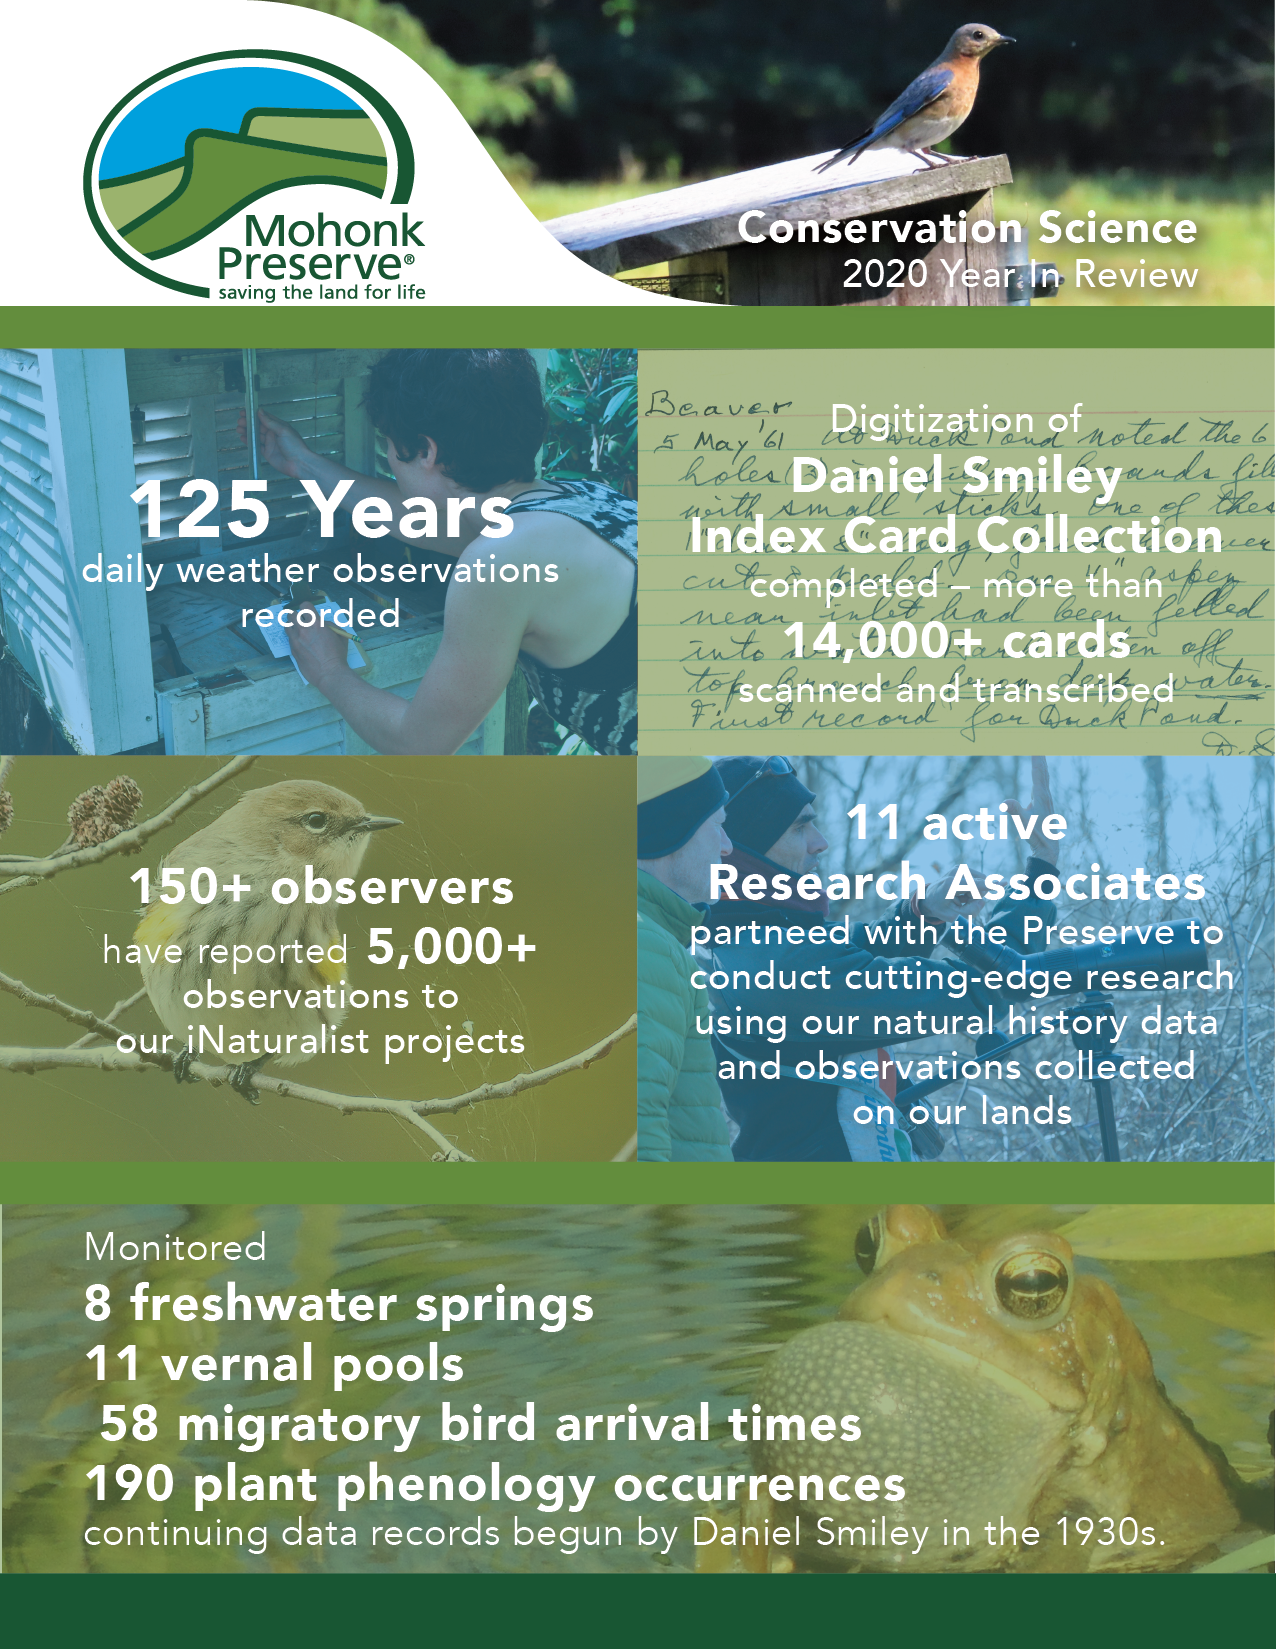 Conservation Science 2020 Year In Review: 125 Years daily weather observations, Digitization of Daniel Smiley Index Card Collection completed - more than 14,000+ cards scanned and transcribed; 150+ observers have reported 5,000+ observations to our iNaturalist projects; 11 active research associates partnered with the Preserve to conduct cutting-edge research using out natural history data and observations collected on our lands; Monitored 8 freshwater springs; 11 vernal pools; 58 migratory bird arrival times; 190 plant phenology occurrences continuing data records begun by Daniel Smiley in the 1930s.